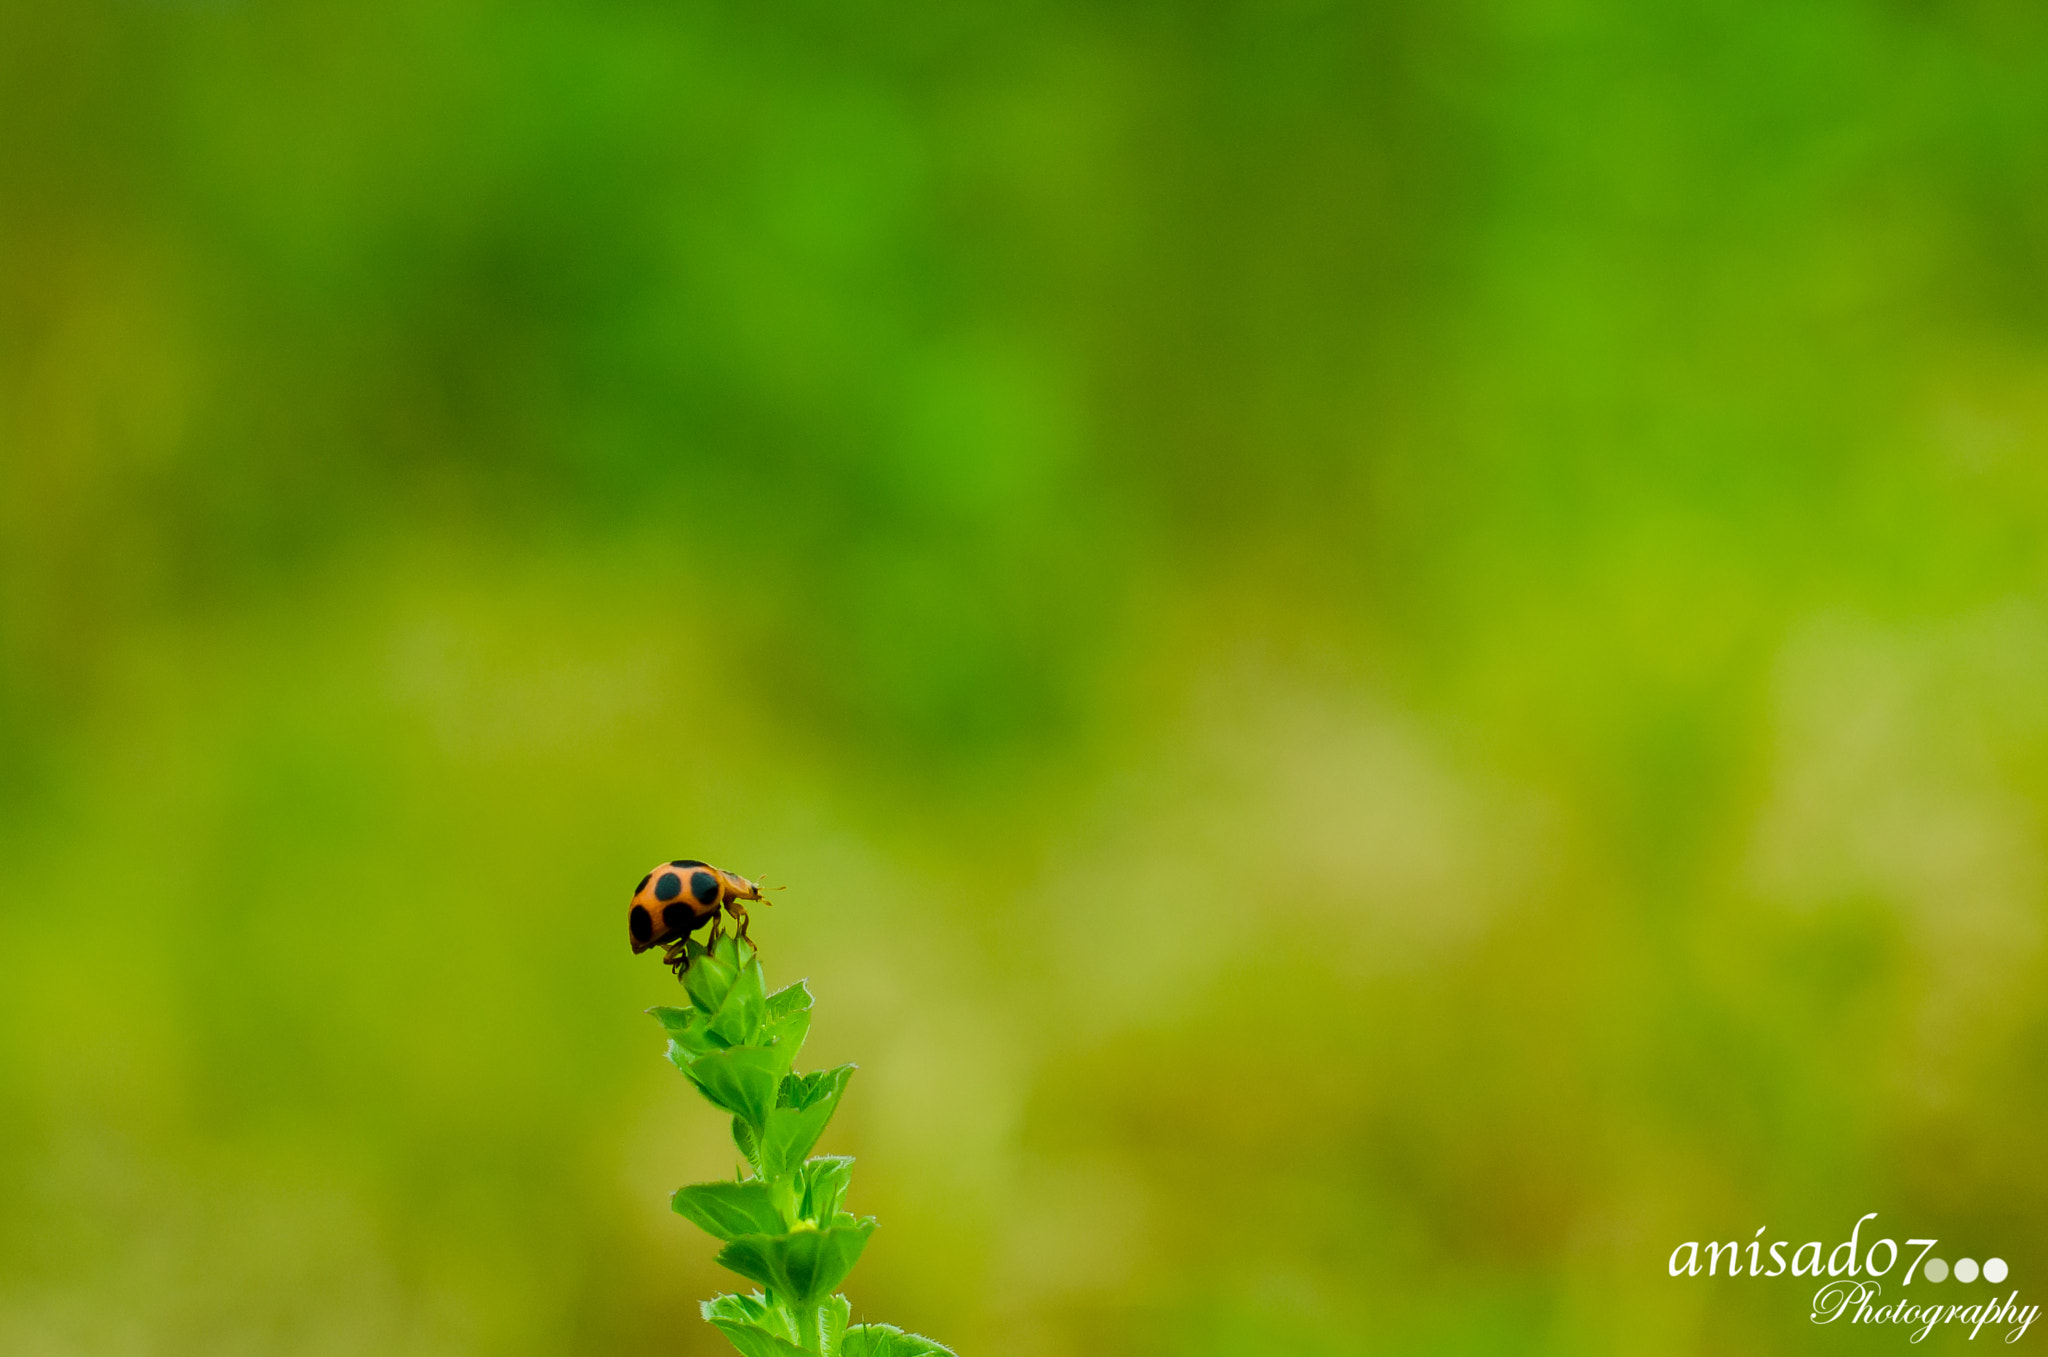 Photograph I am in the TOP by Anish Adhikari on 500px